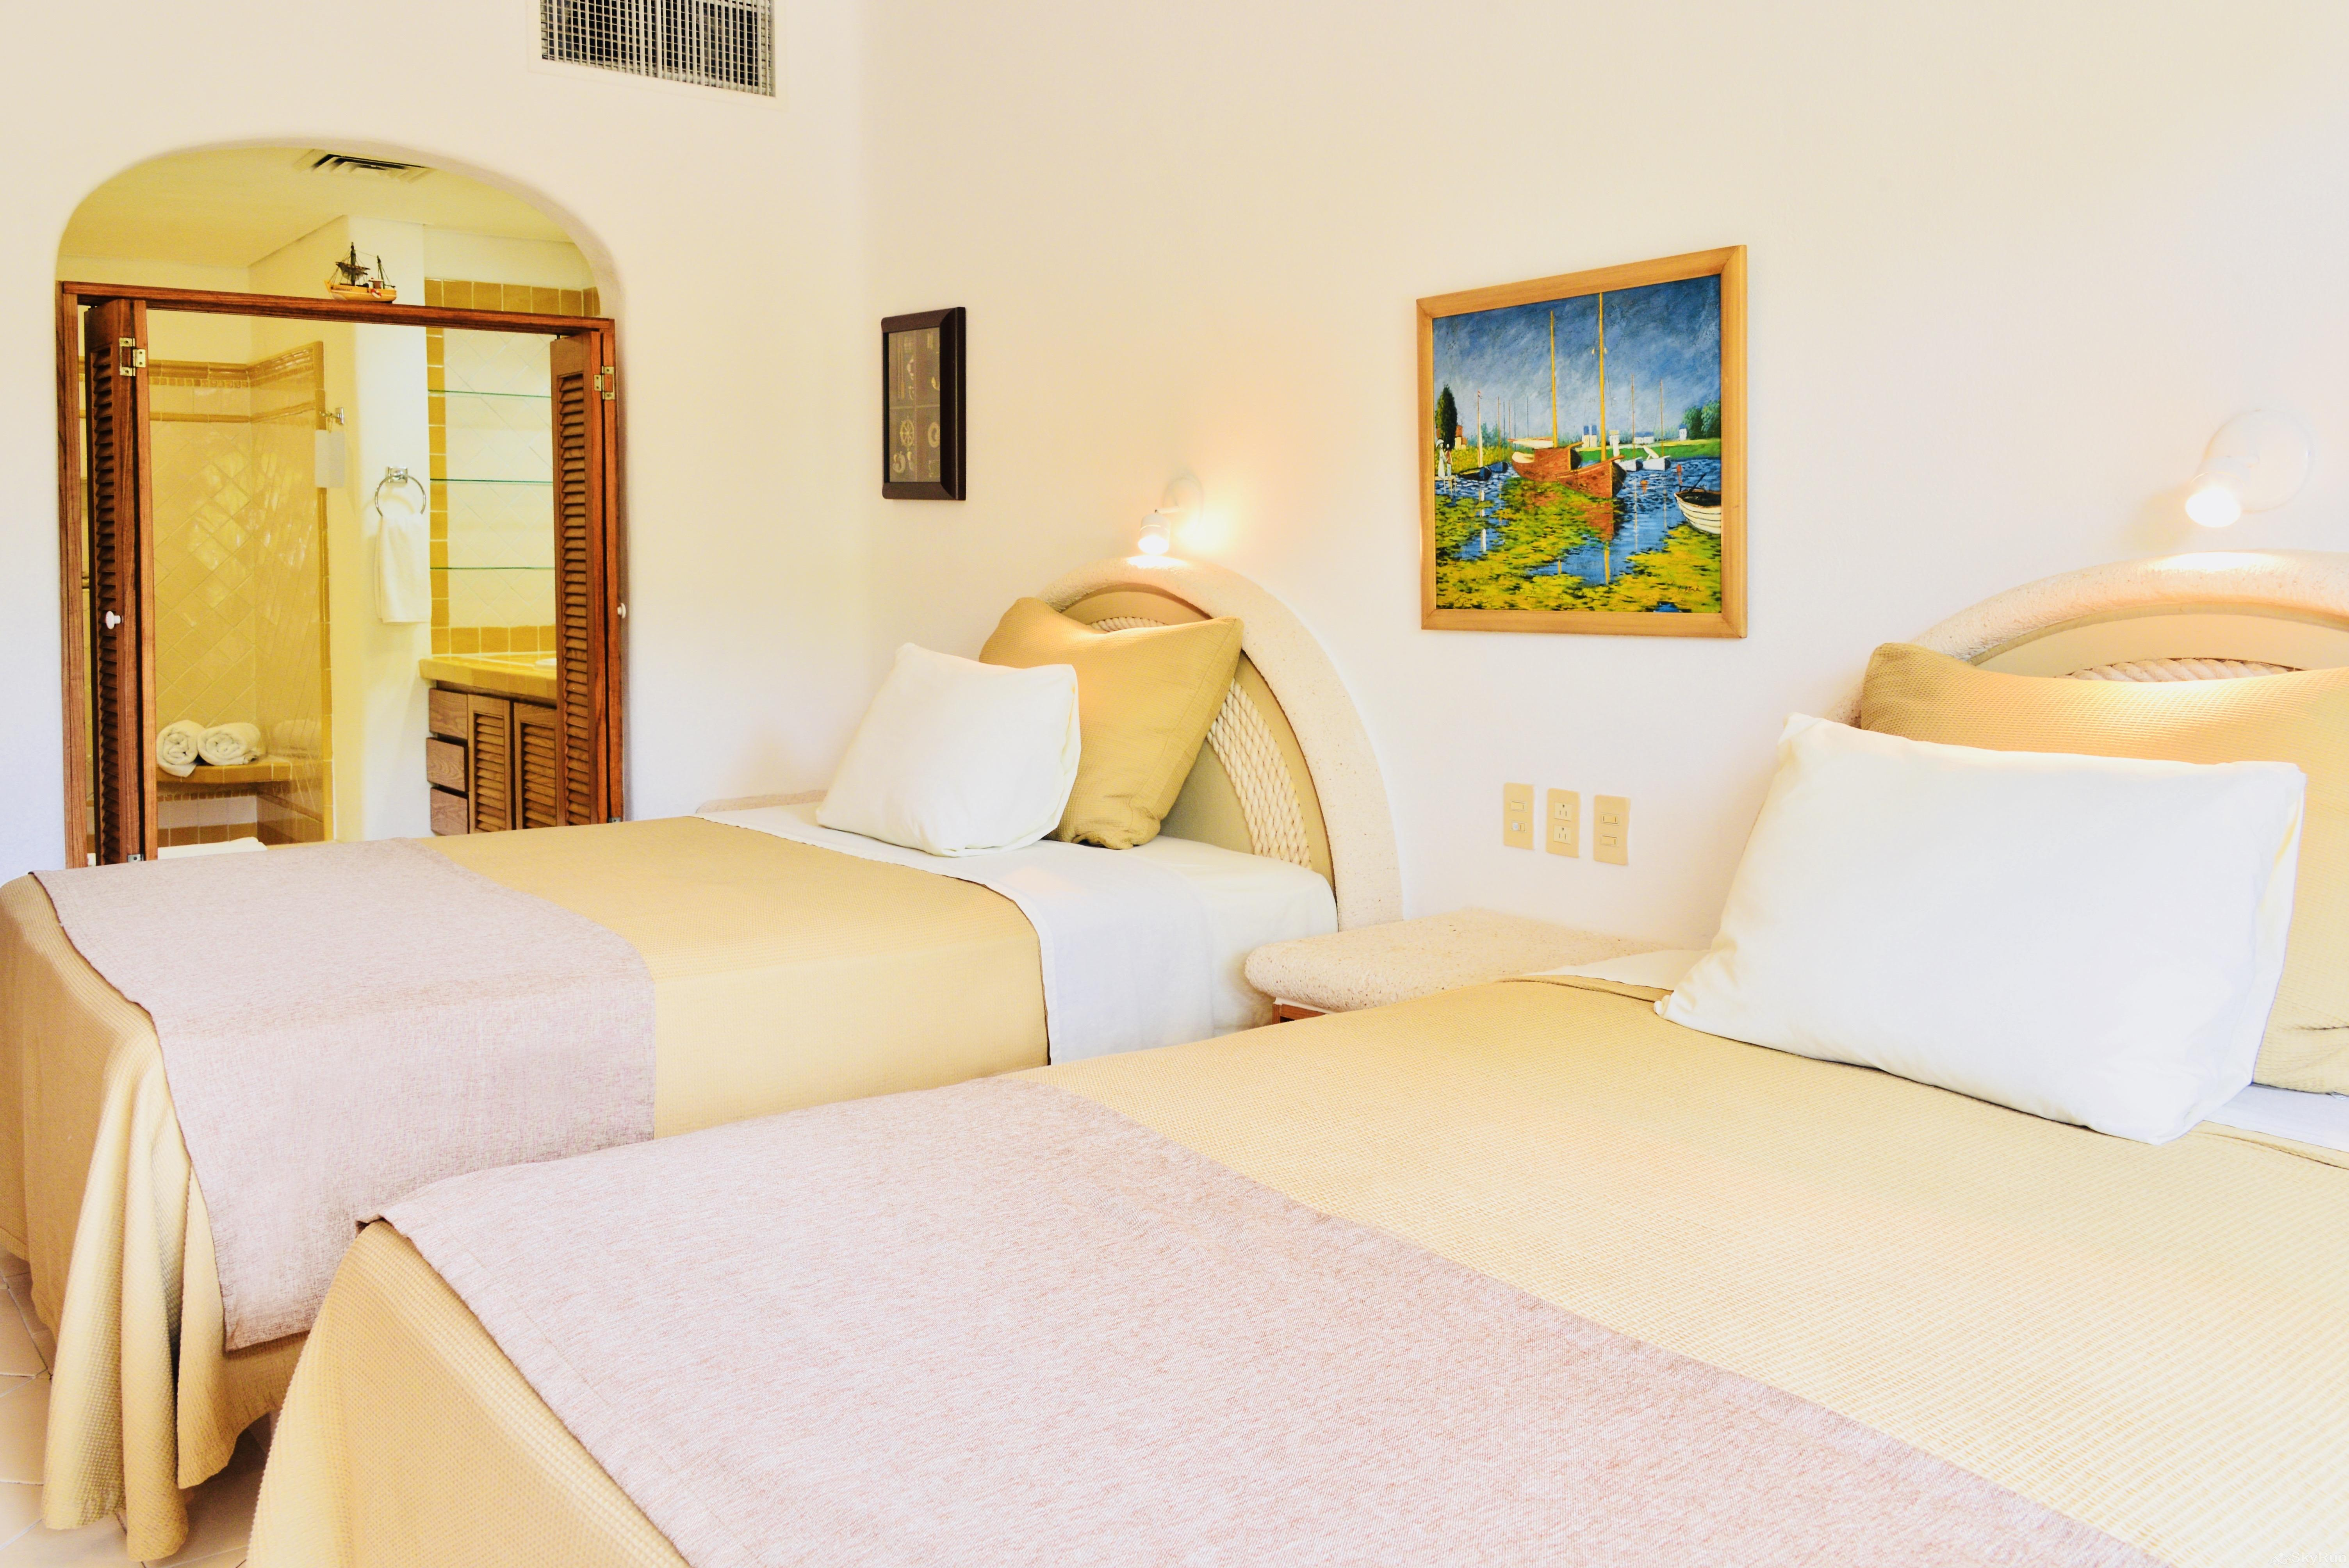 Beachfront Tulum condo 113 Outdoor Pool Resort Amenities 2nd Bedroom 2 Queen Beds